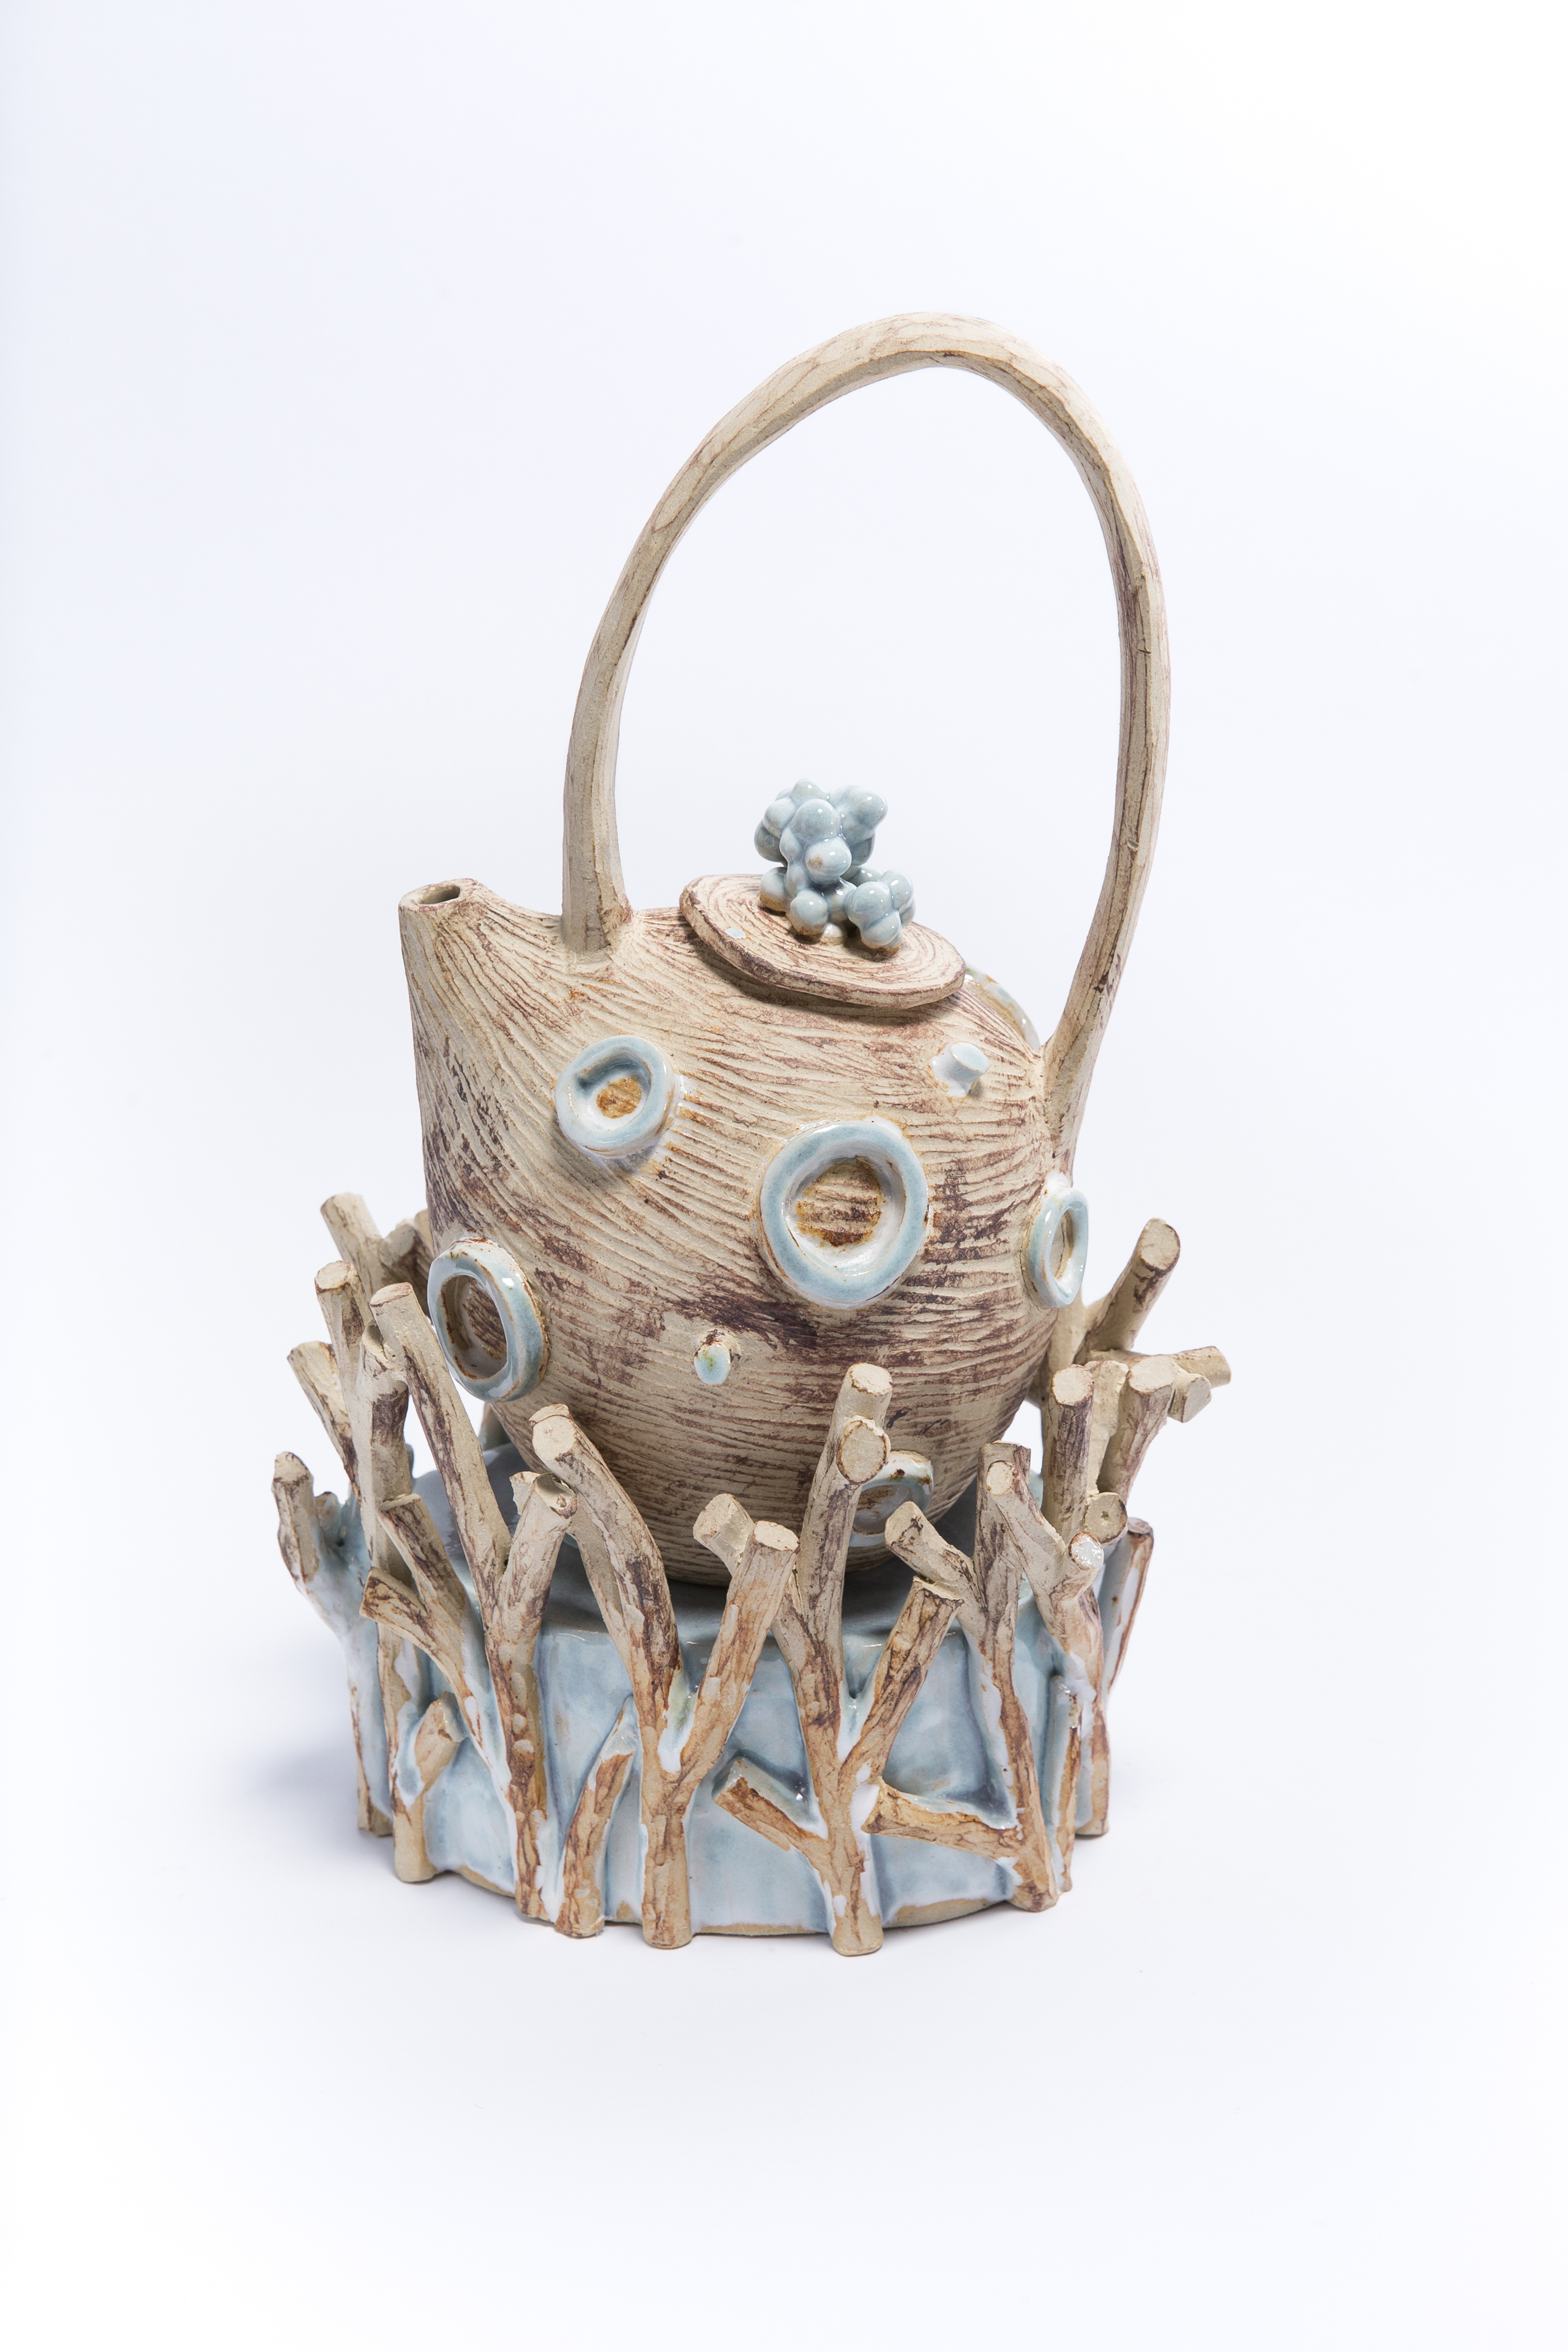 Bev Seth 2 teapot in nest of branches